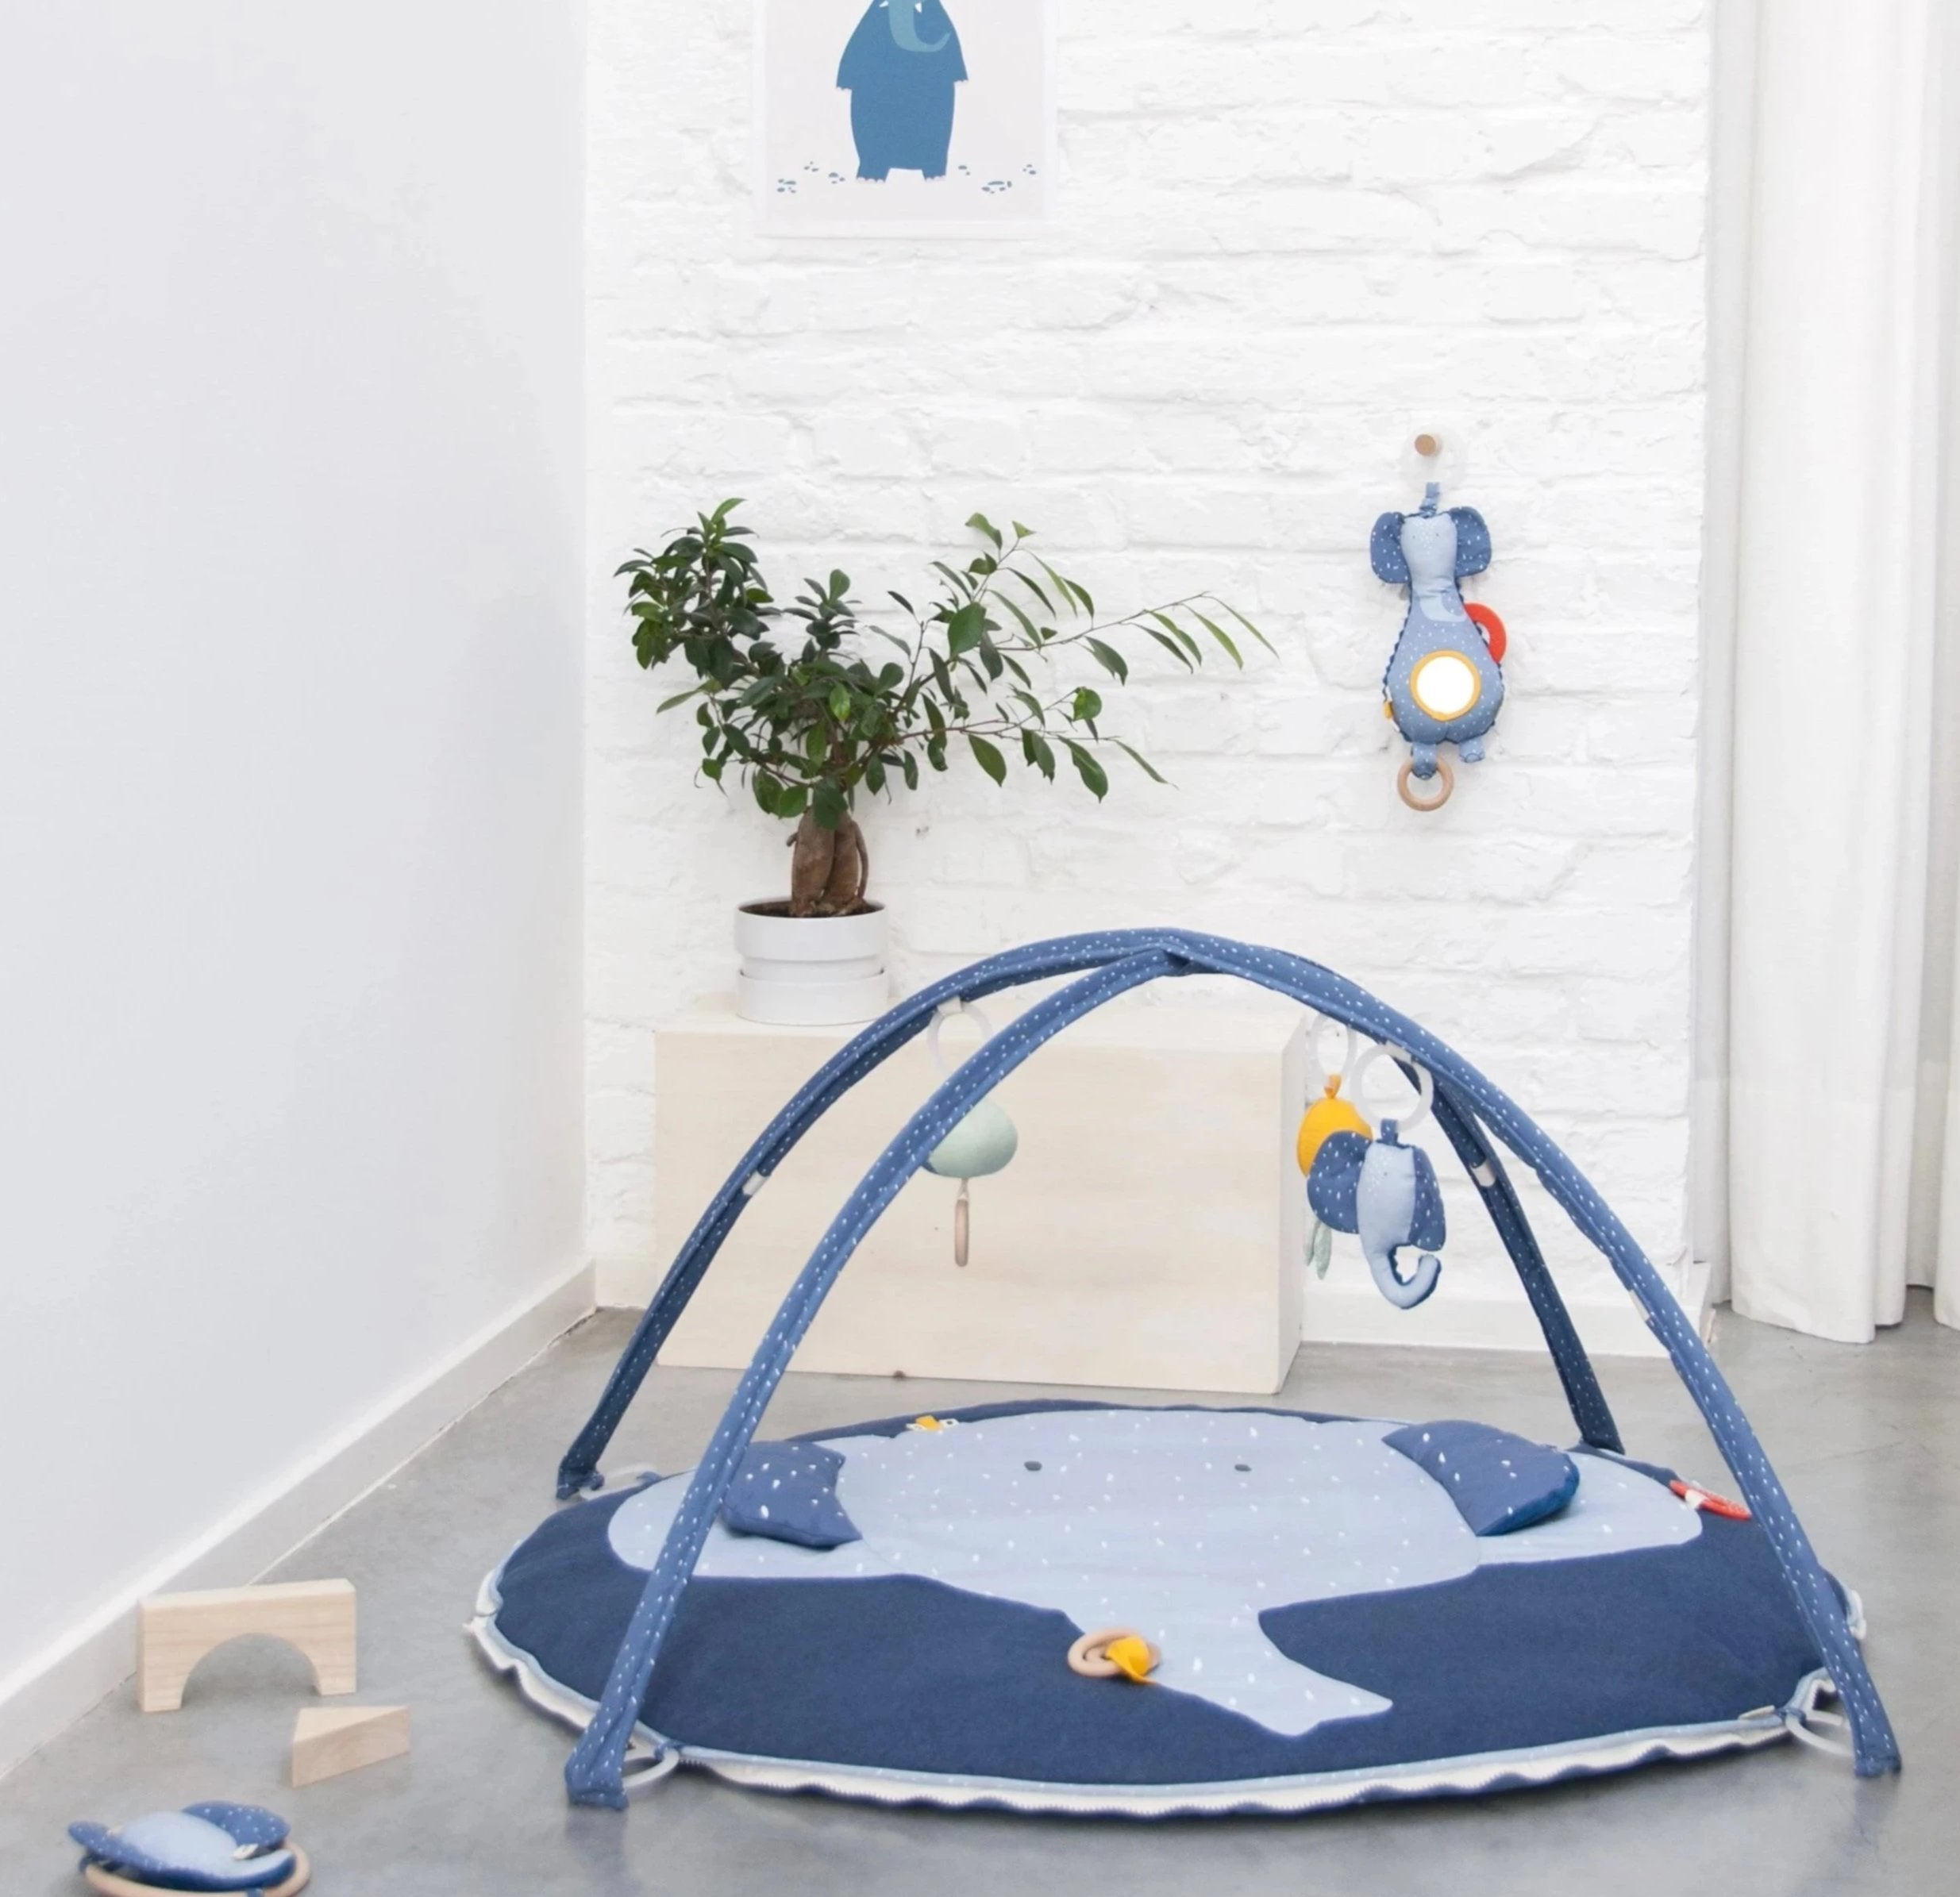 Toy range | Activity play mat with arches - Mrs Elephant